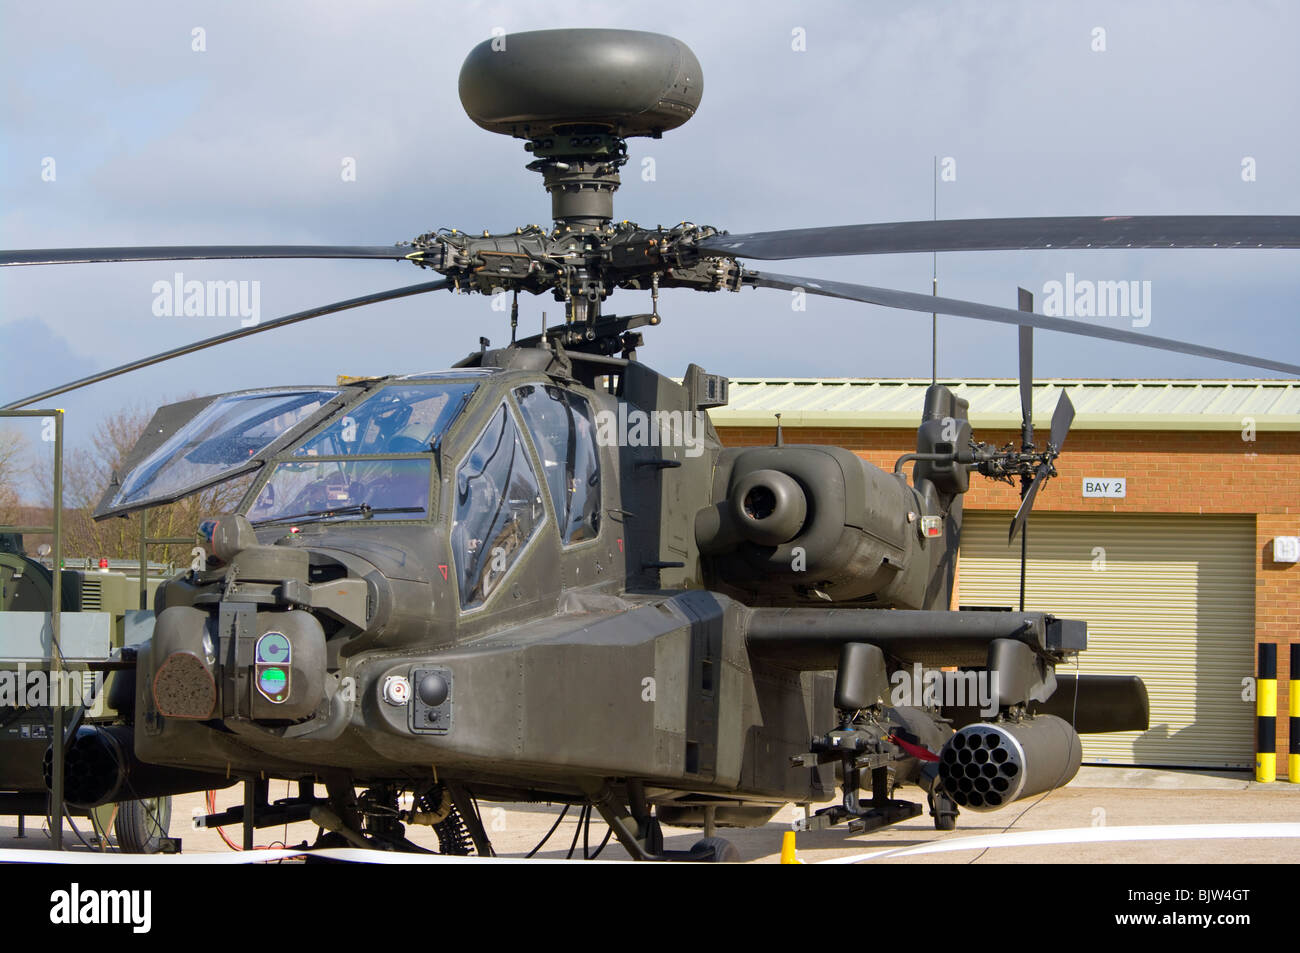 A British Army Westland Attack Helicopter WAH-64 MK1 Apache Longbow - Stock Image